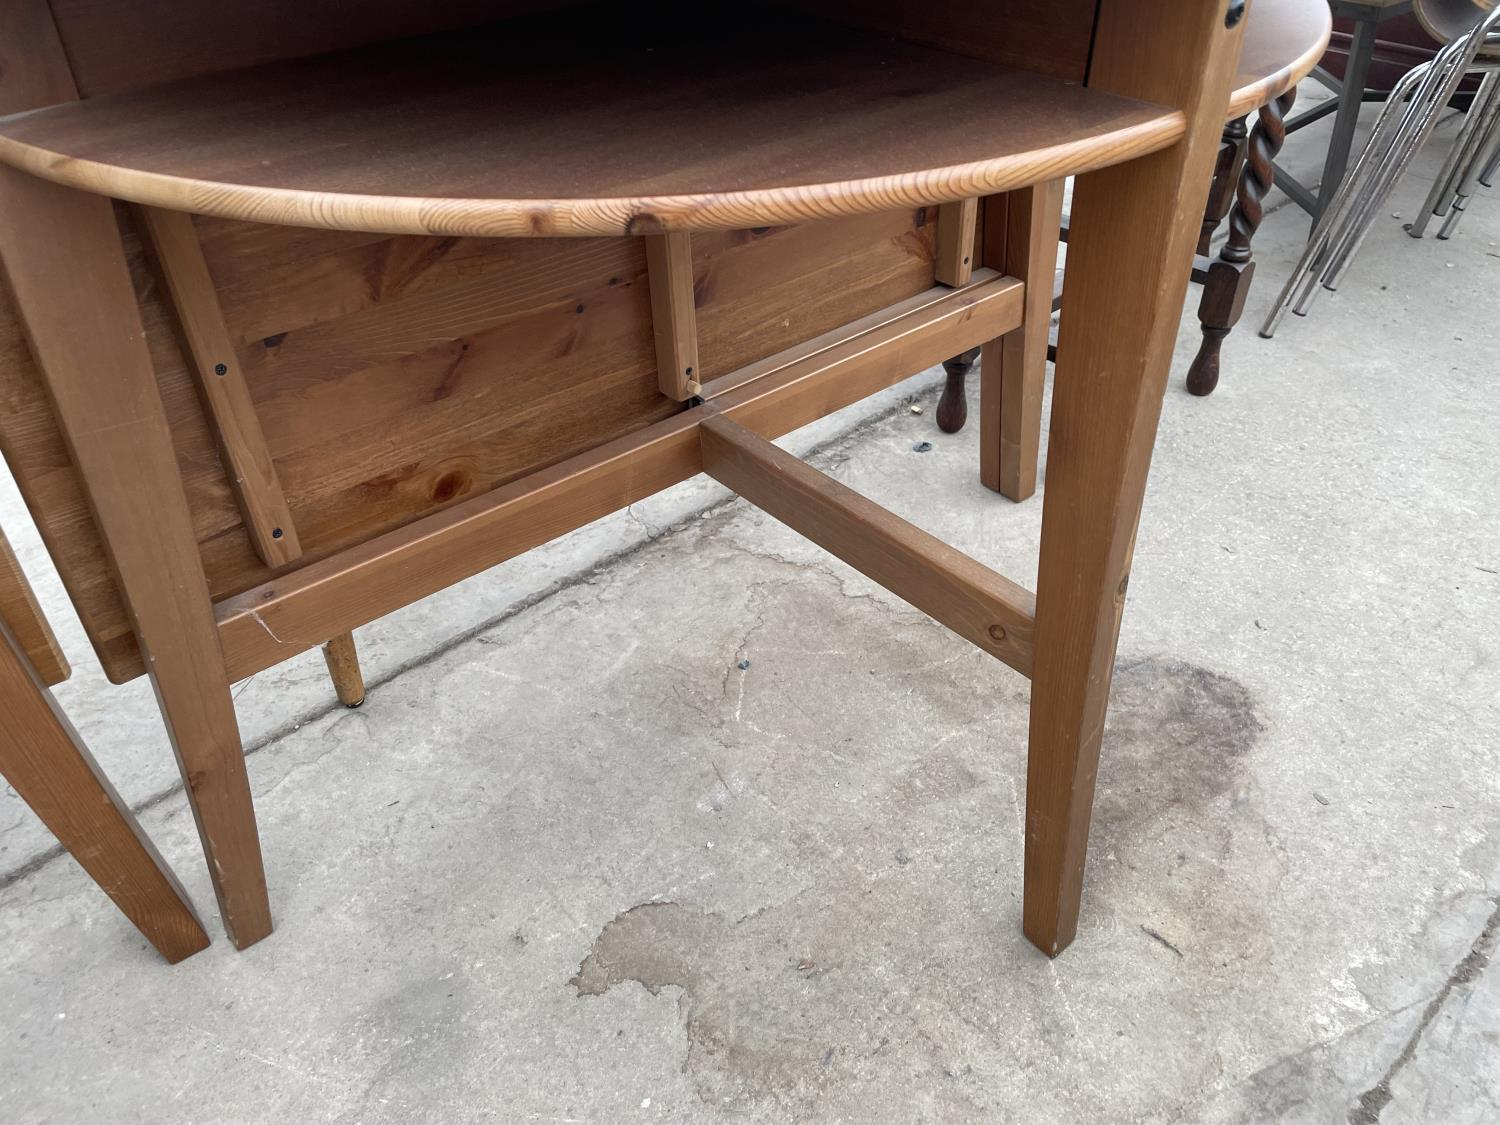 TWO PINE DROP LEAF TABLES - Image 5 of 5